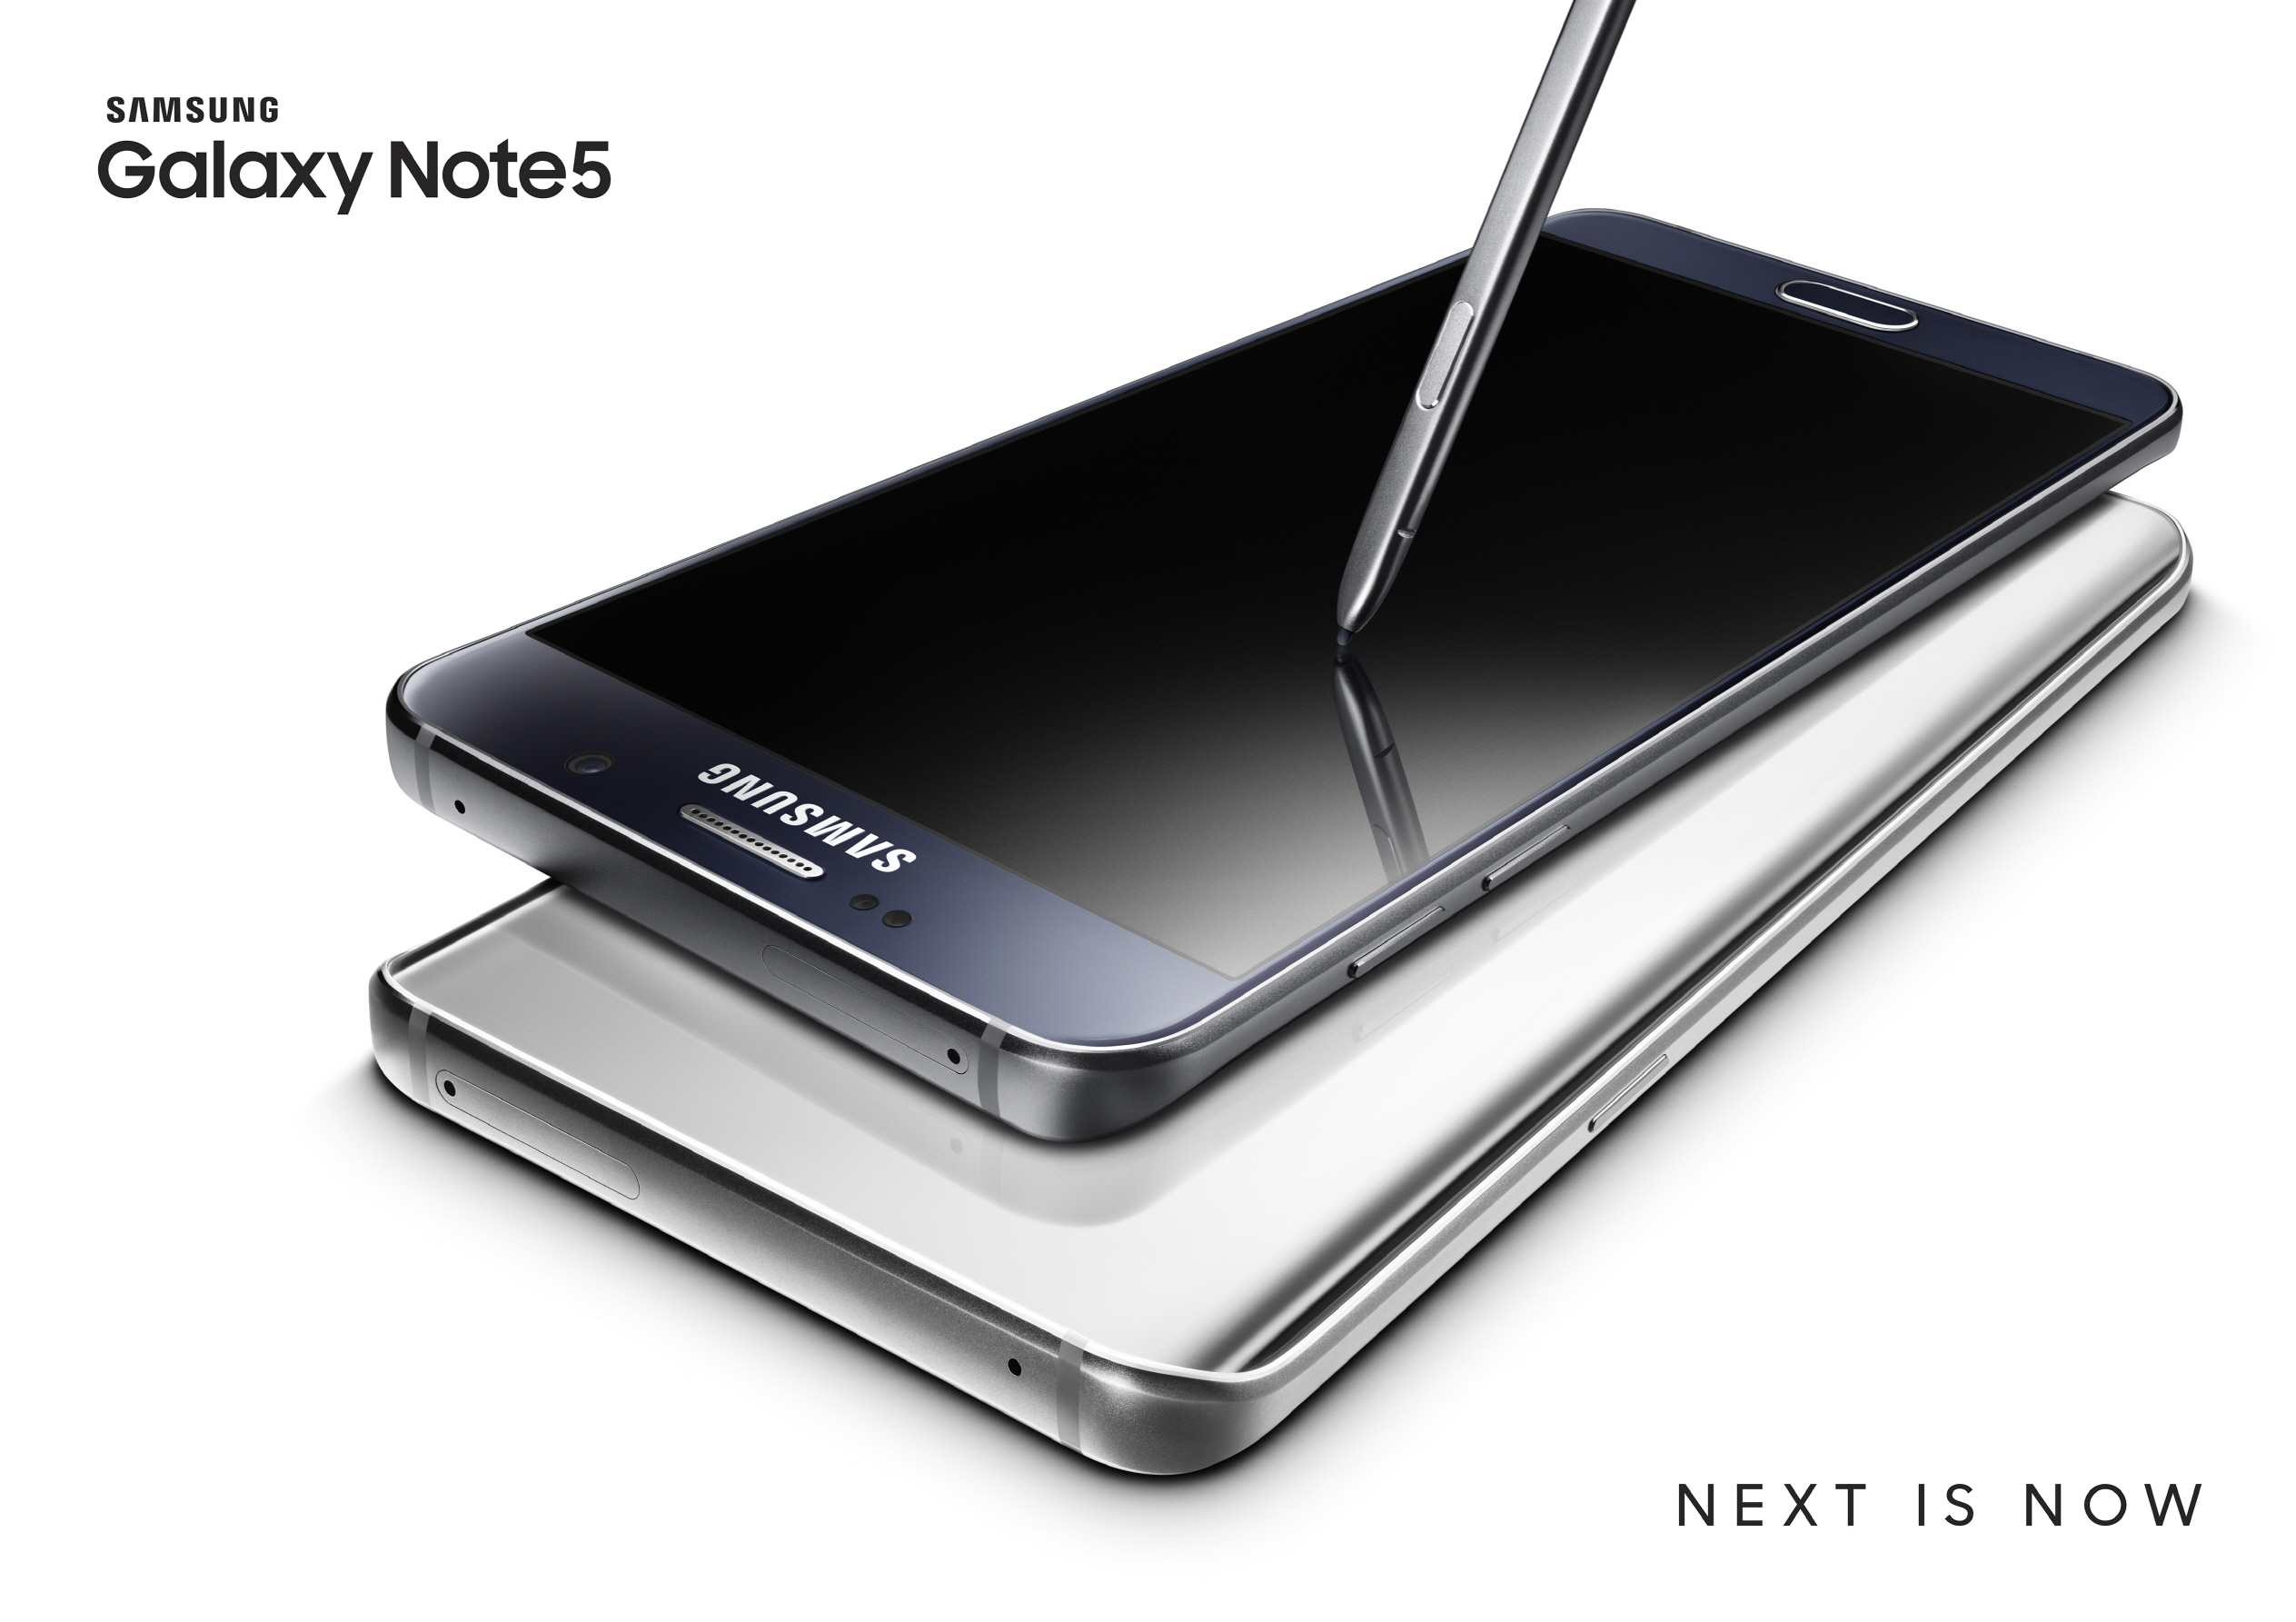 Galaxy Note 5: Powerful but Pricey